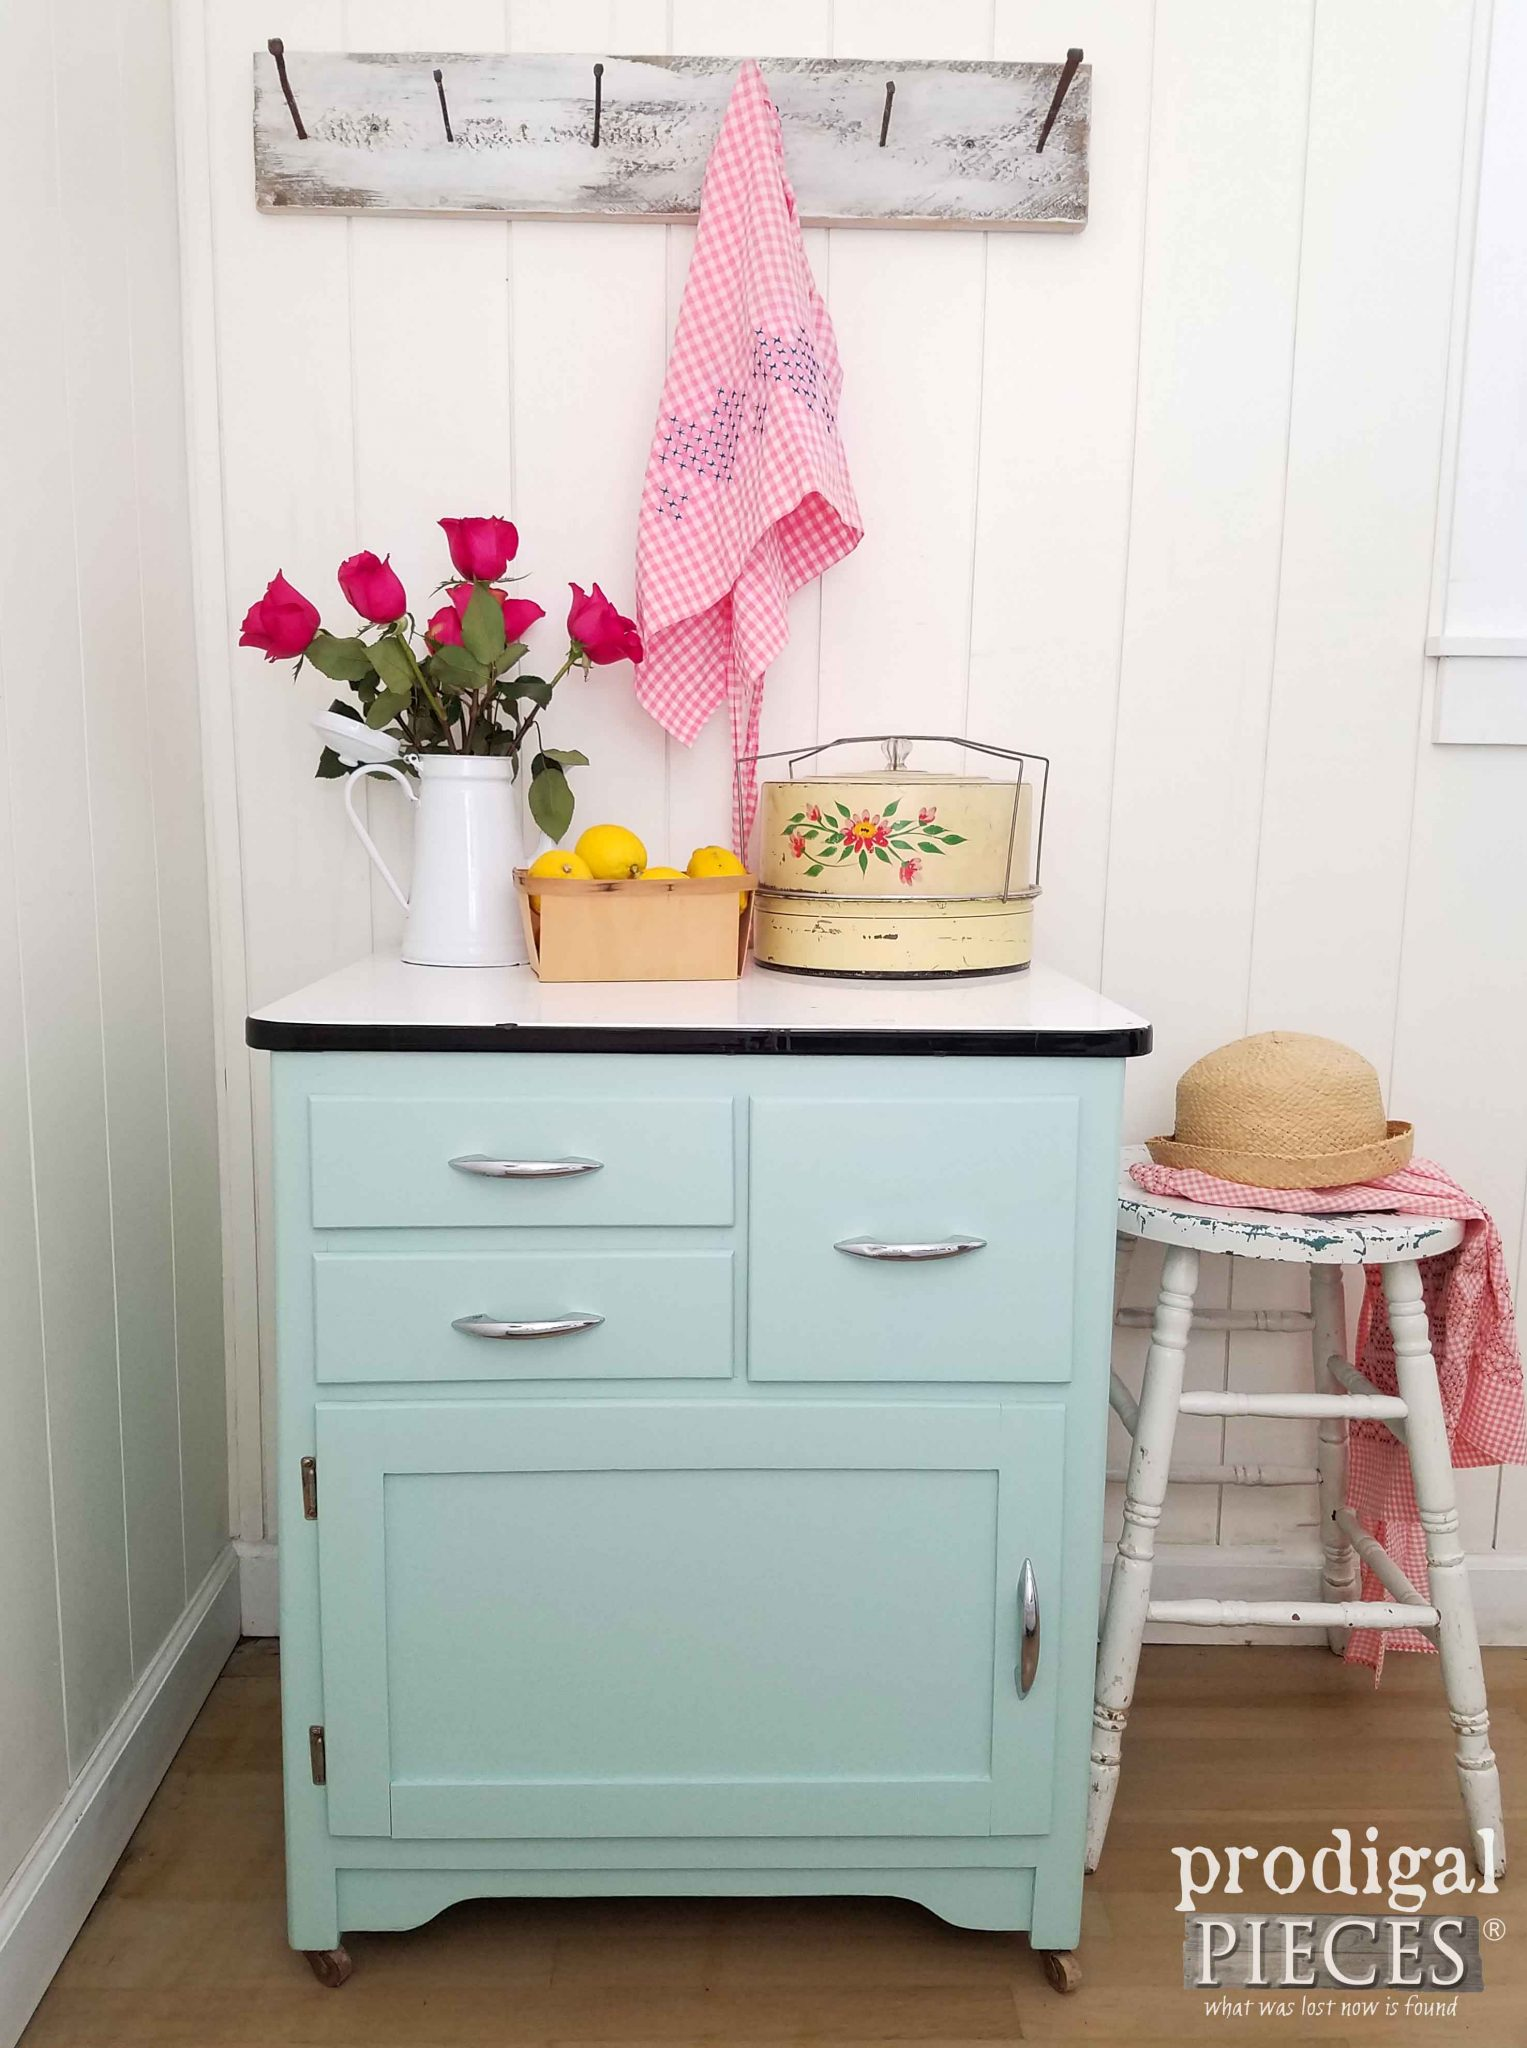 Cottage Style Retro Cabinet by Prodigal Pieces | prodigalpieces.com